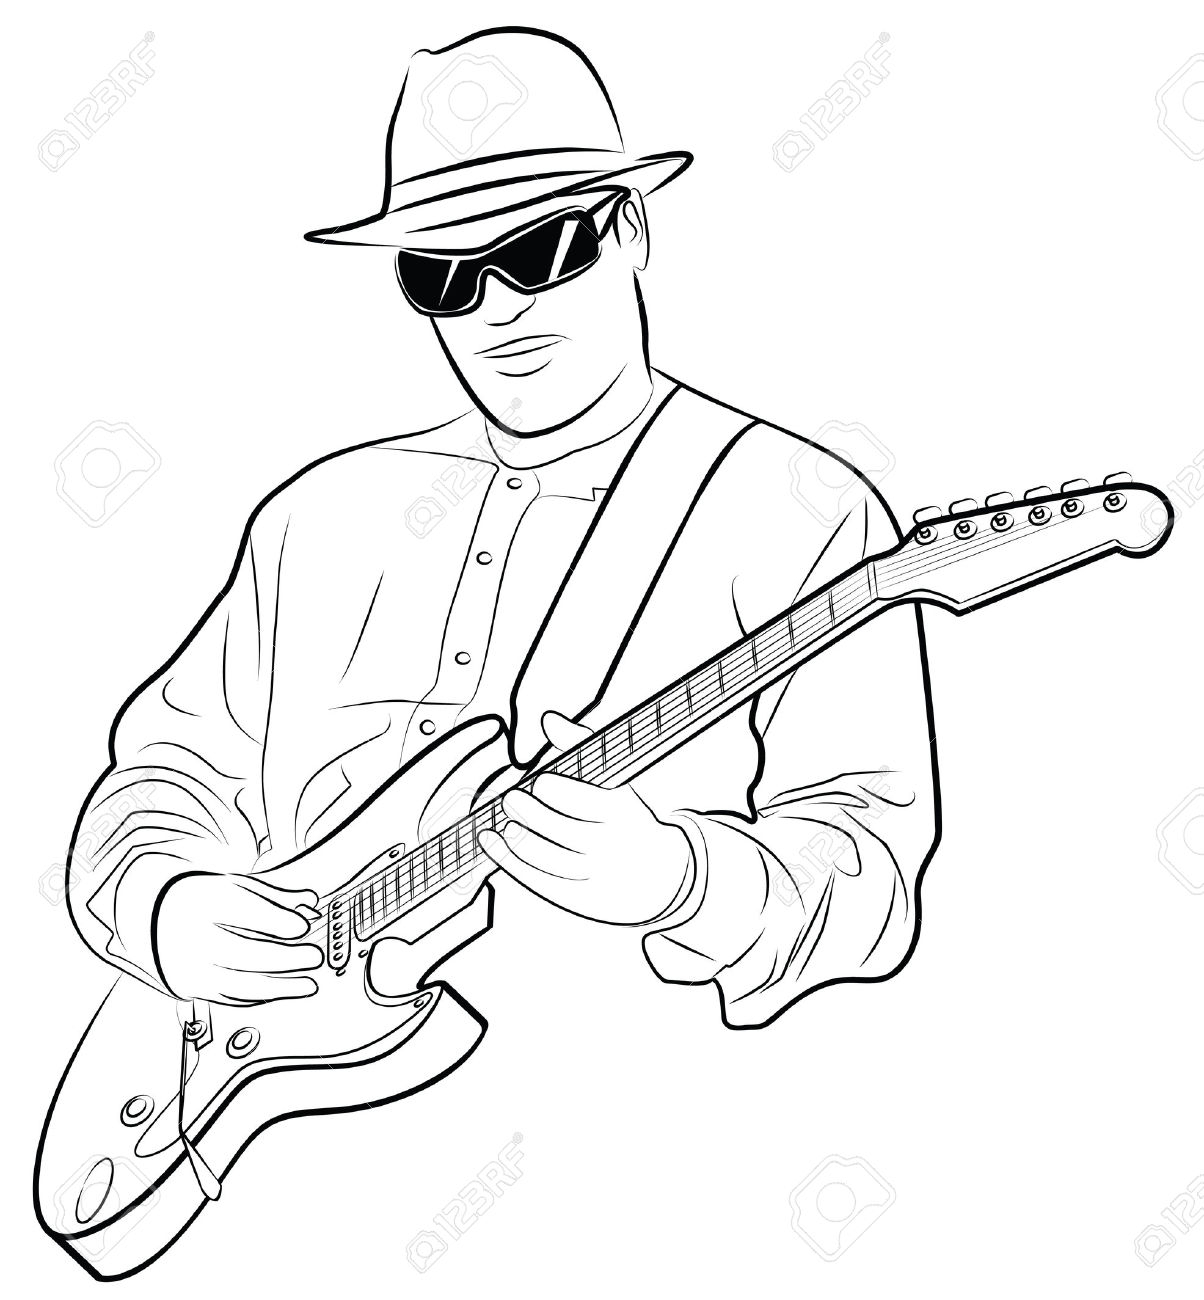 1204x1300 Man Playing Guitar Drawing Vector Illustration Of A Man Playing